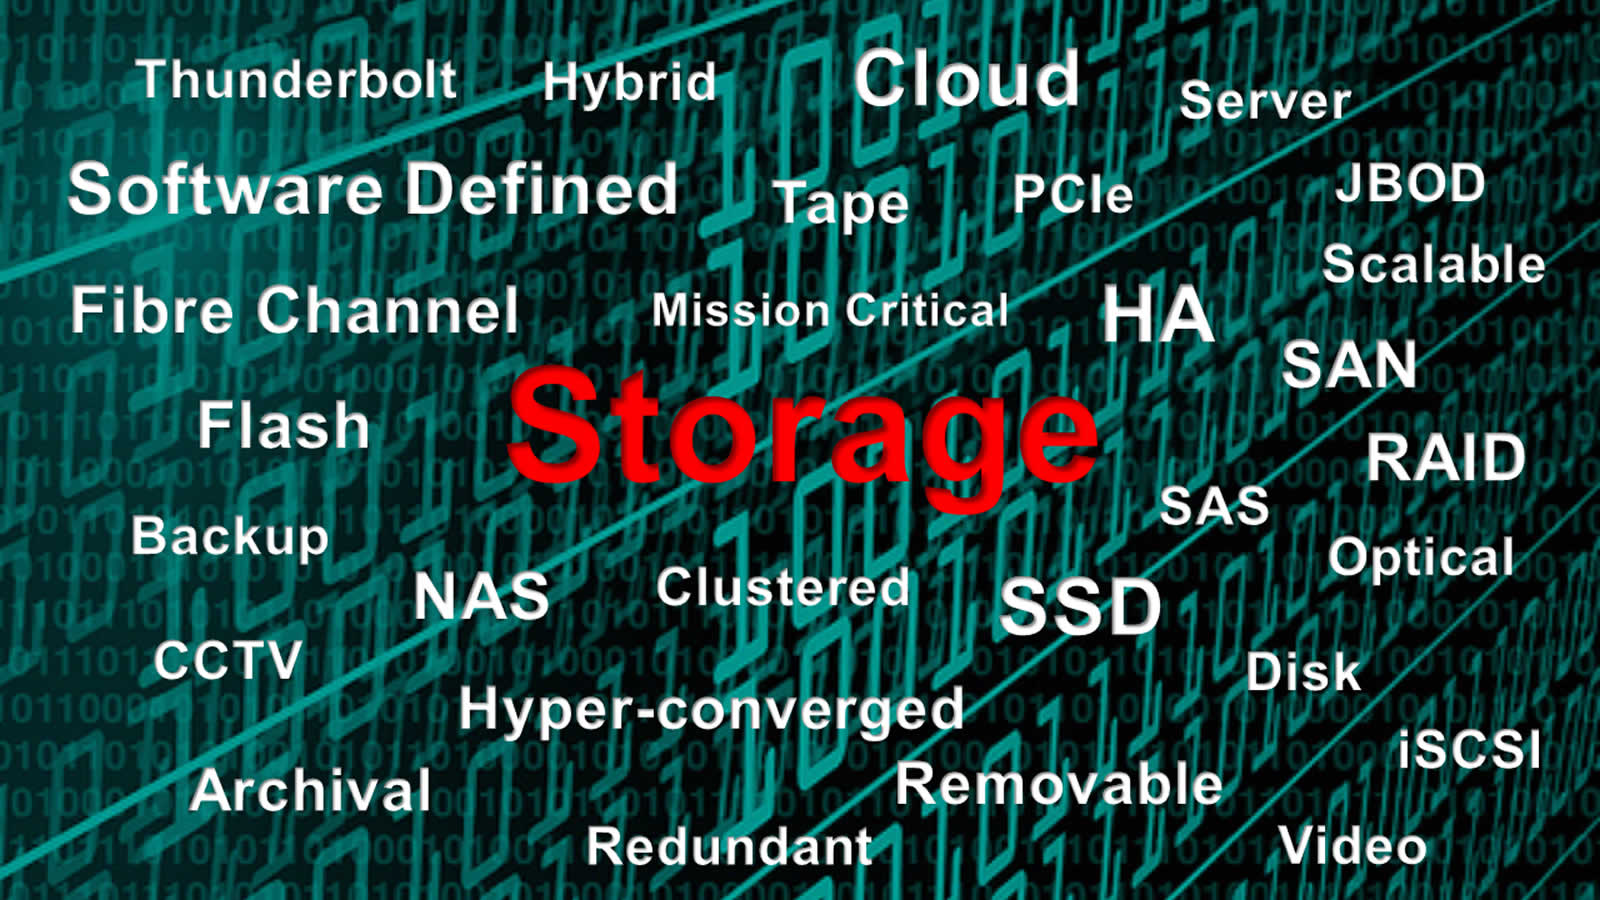 Data Storage Products and Solutions